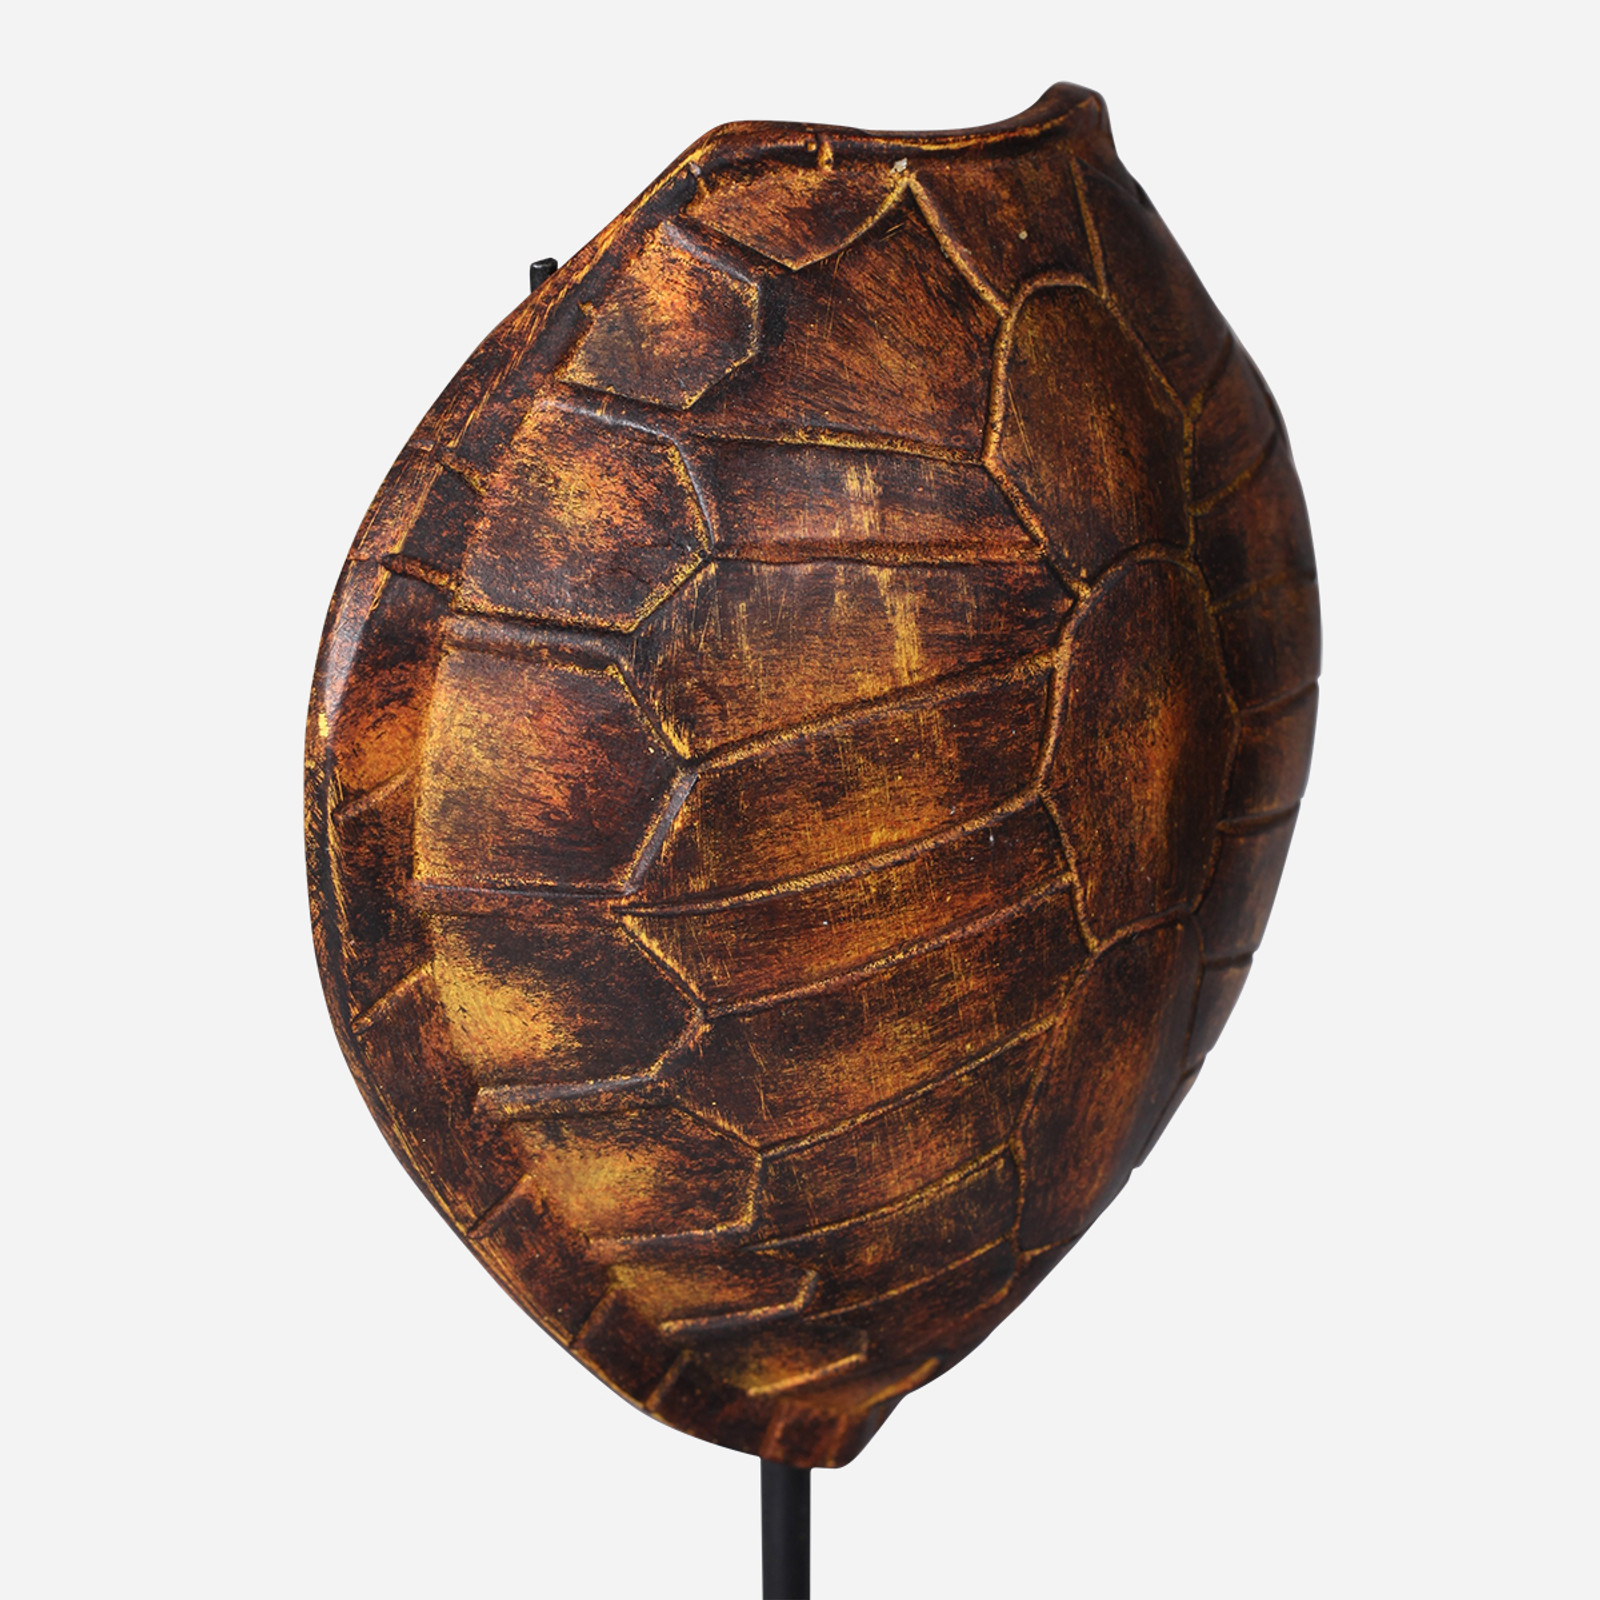 Faux Olive Ridley Turtle Shell on Stand